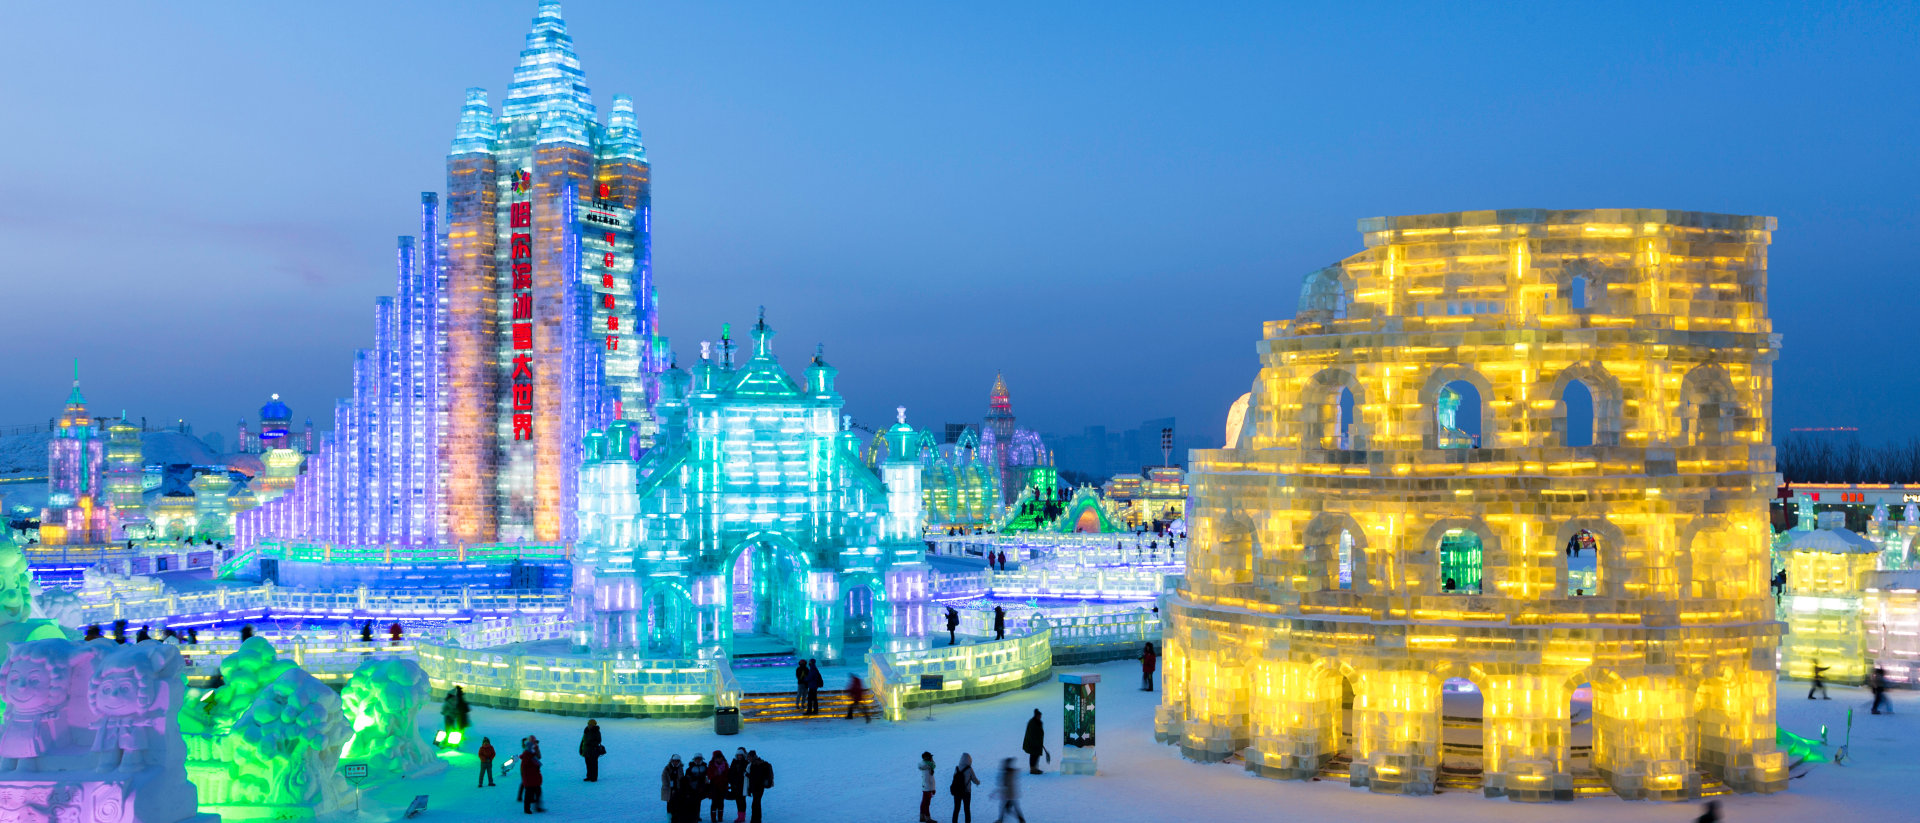 Spectacular illuminated ice sculptures at the Harbin Ice and Snow Festival in Harbin Heilongjiang Province China Asia